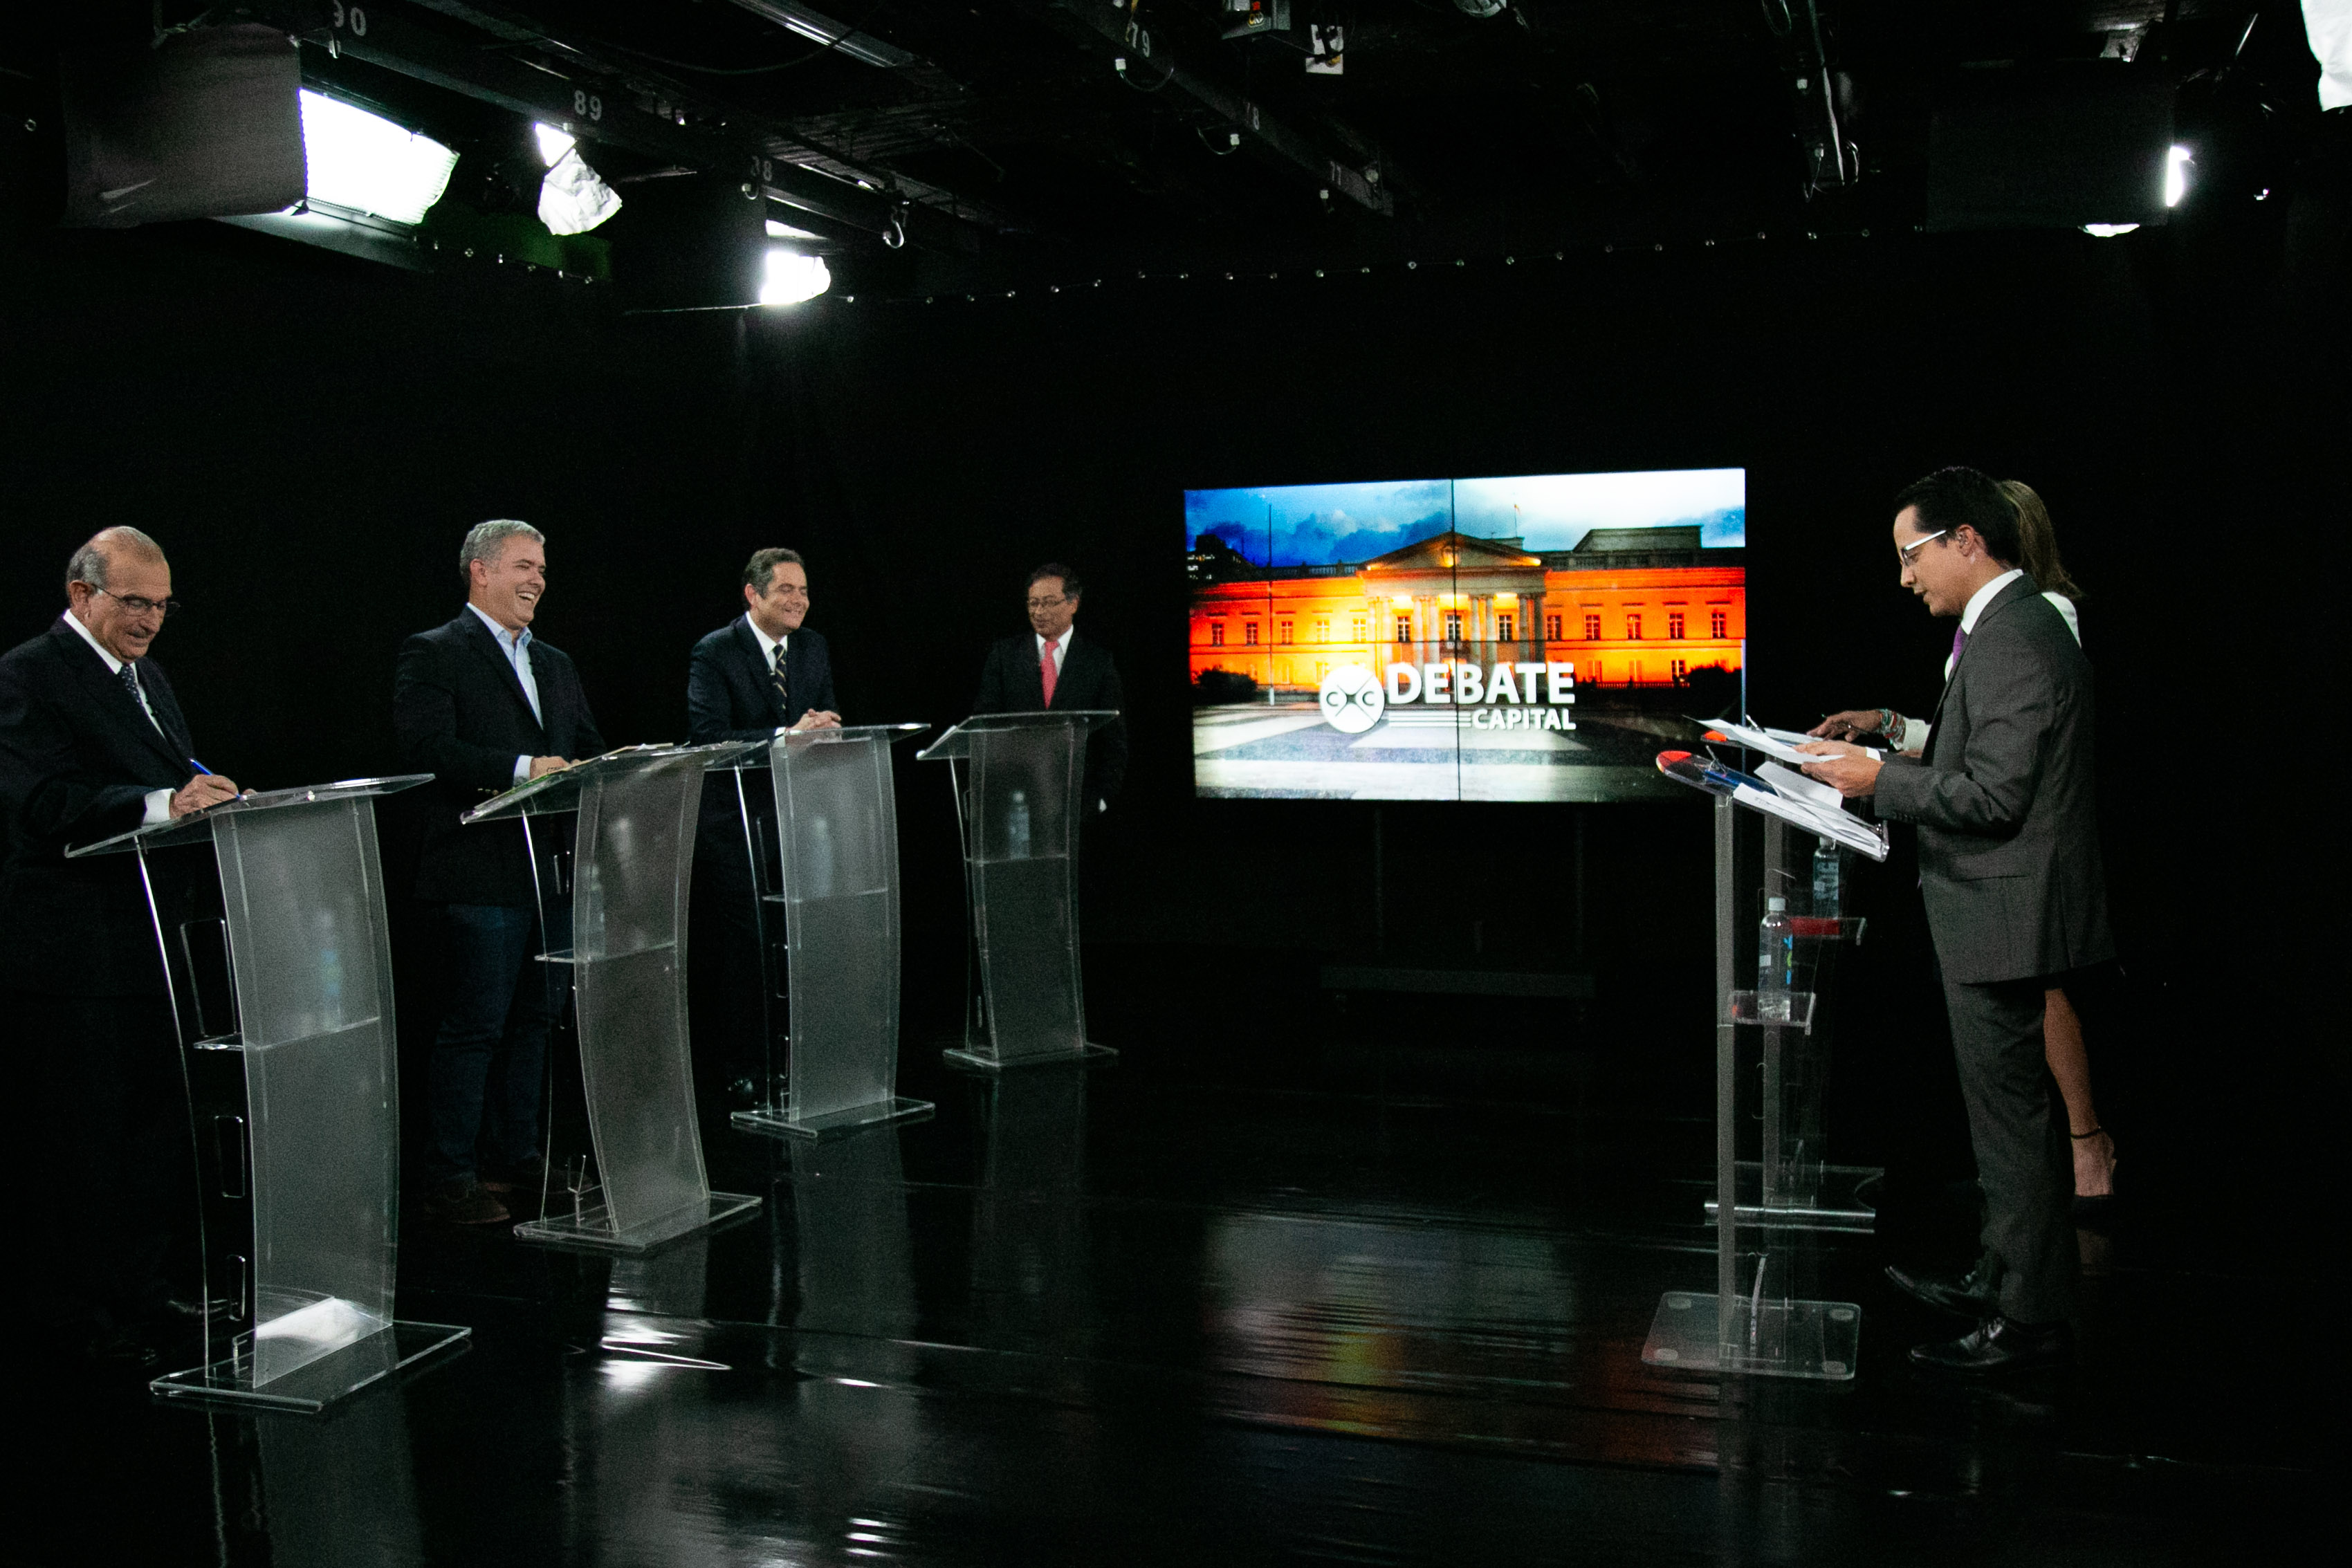 Colombia's presidential debate by Canal